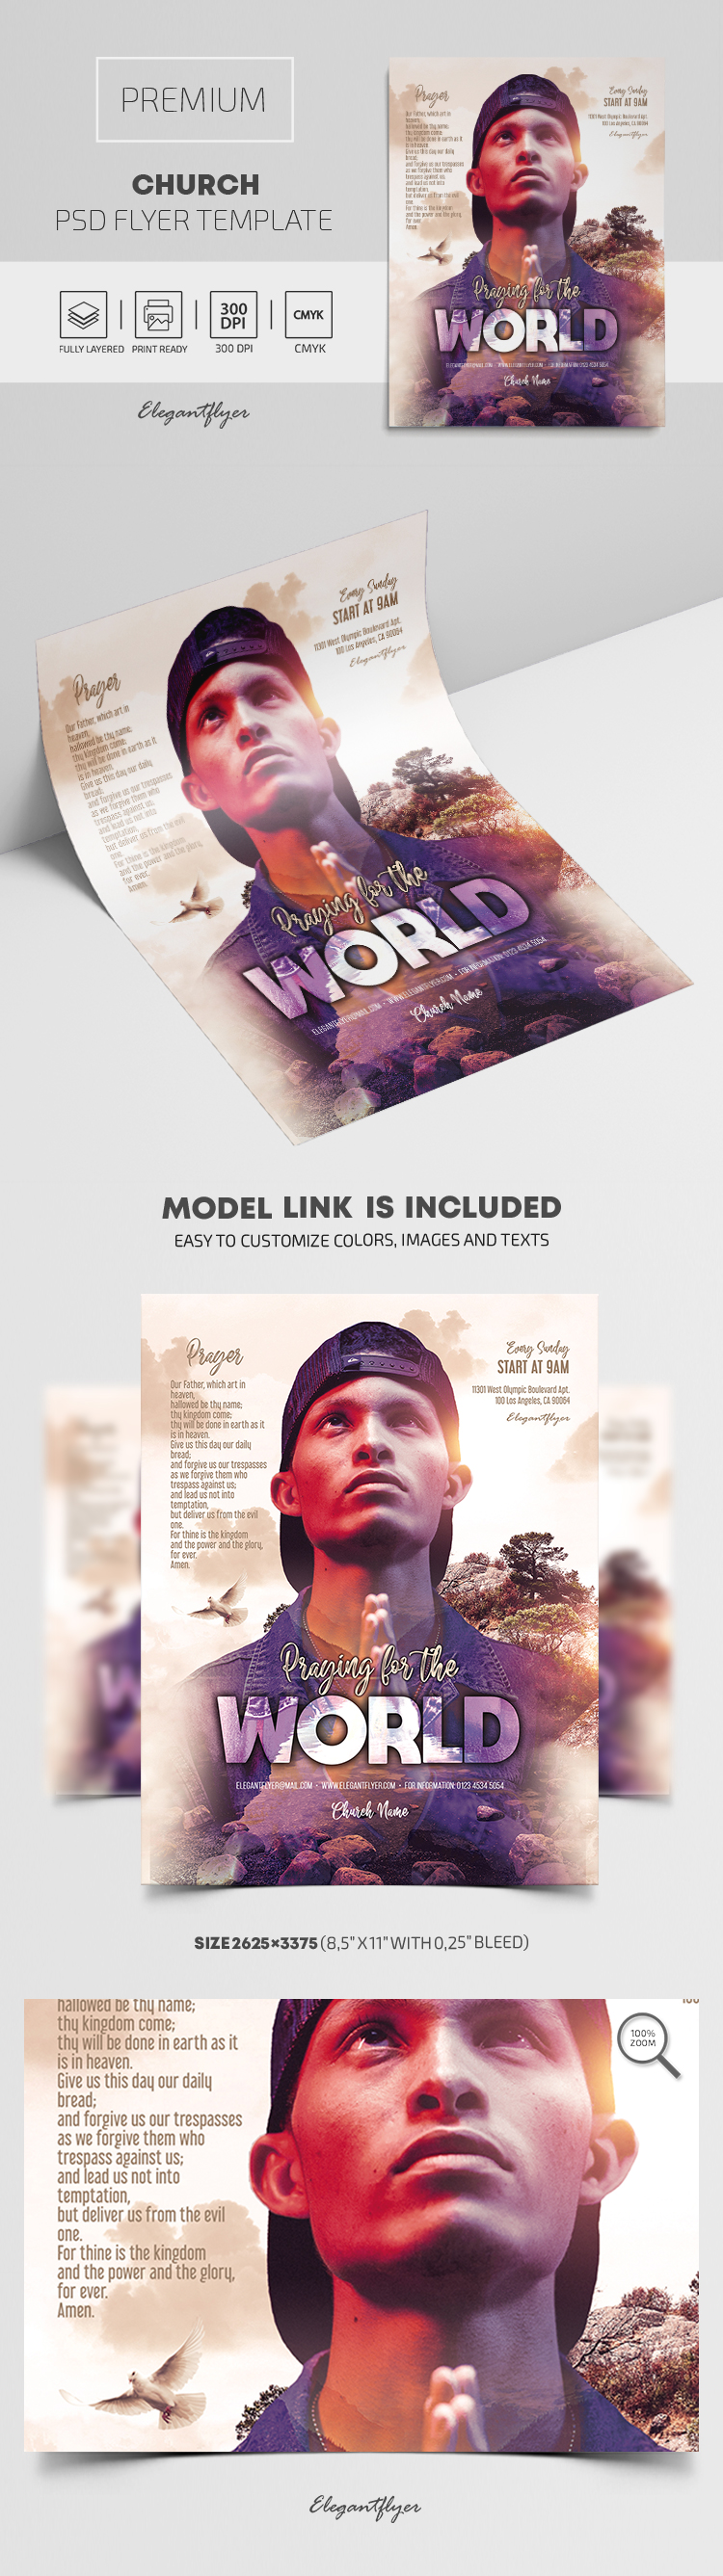 Church – Premium PSD Flyer Template